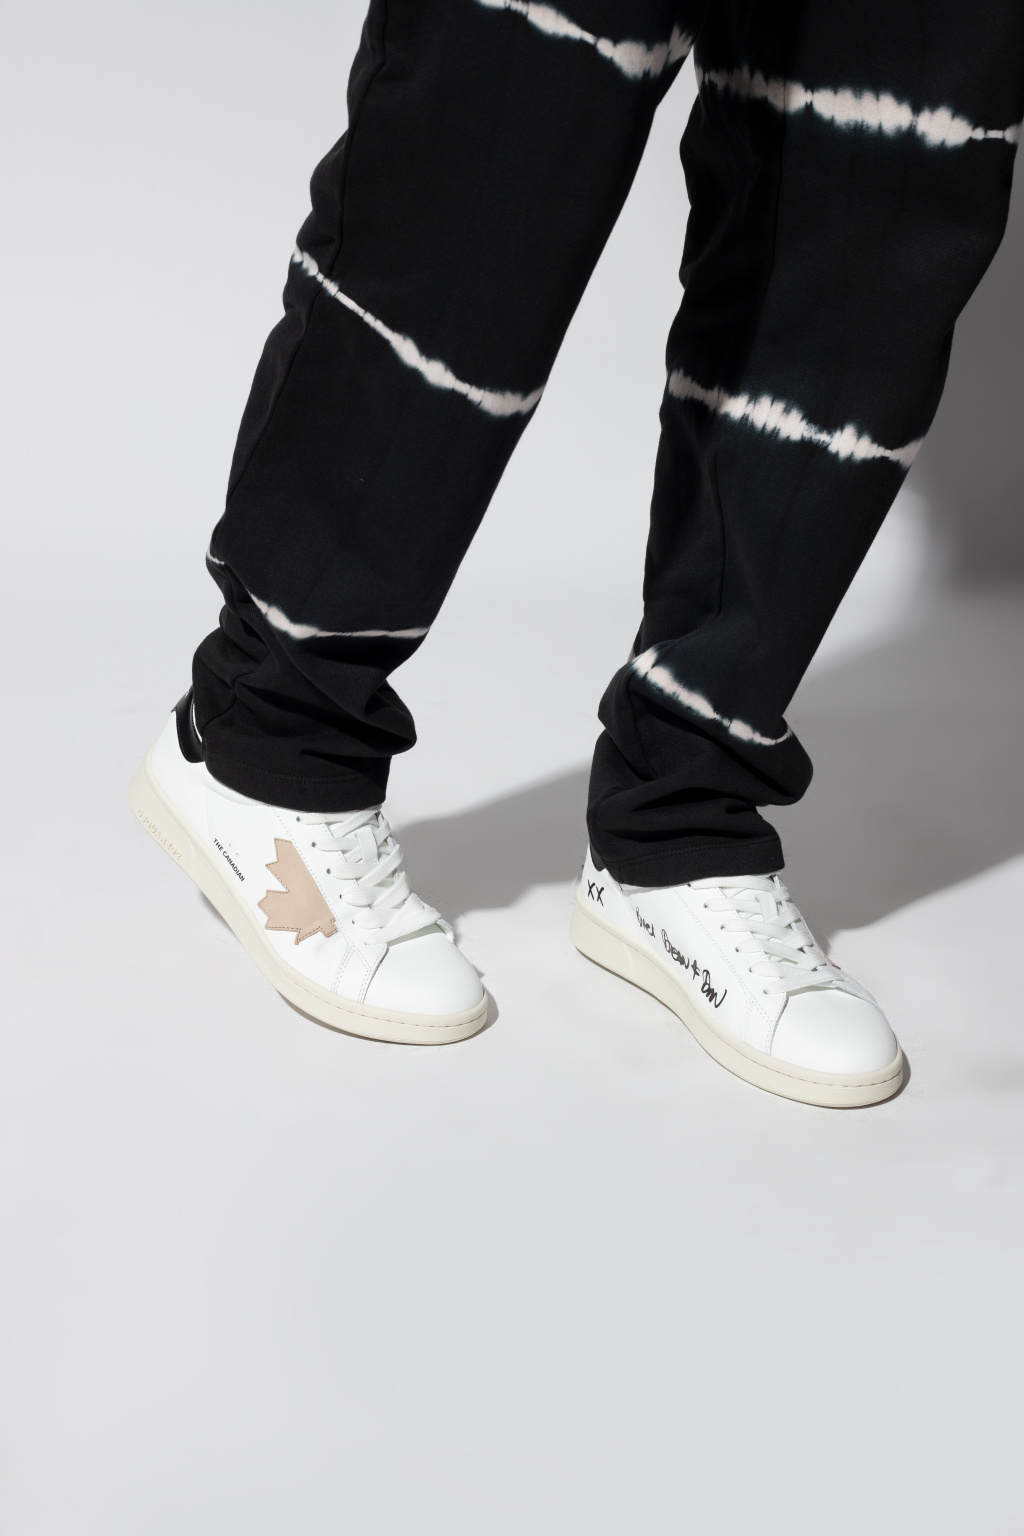 Dsquared2 'Boxer' sneakers